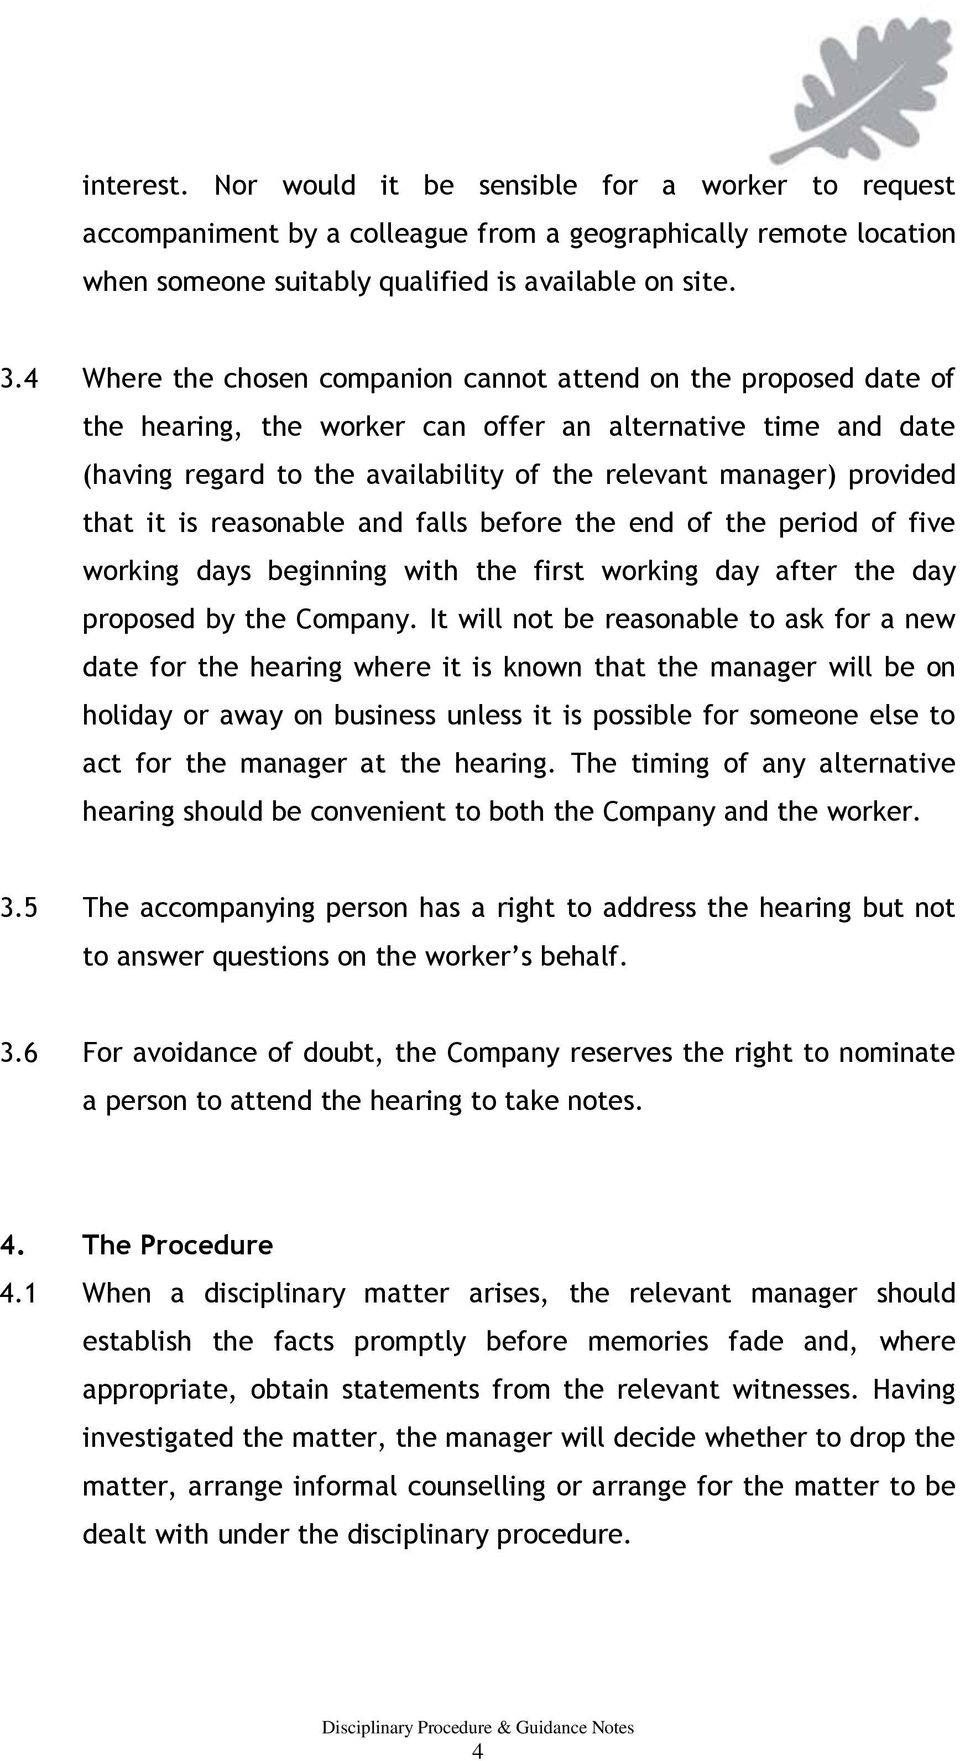 that it is reasonable and falls before the end of the period of five working days beginning with the first working day after the day proposed by the Company.